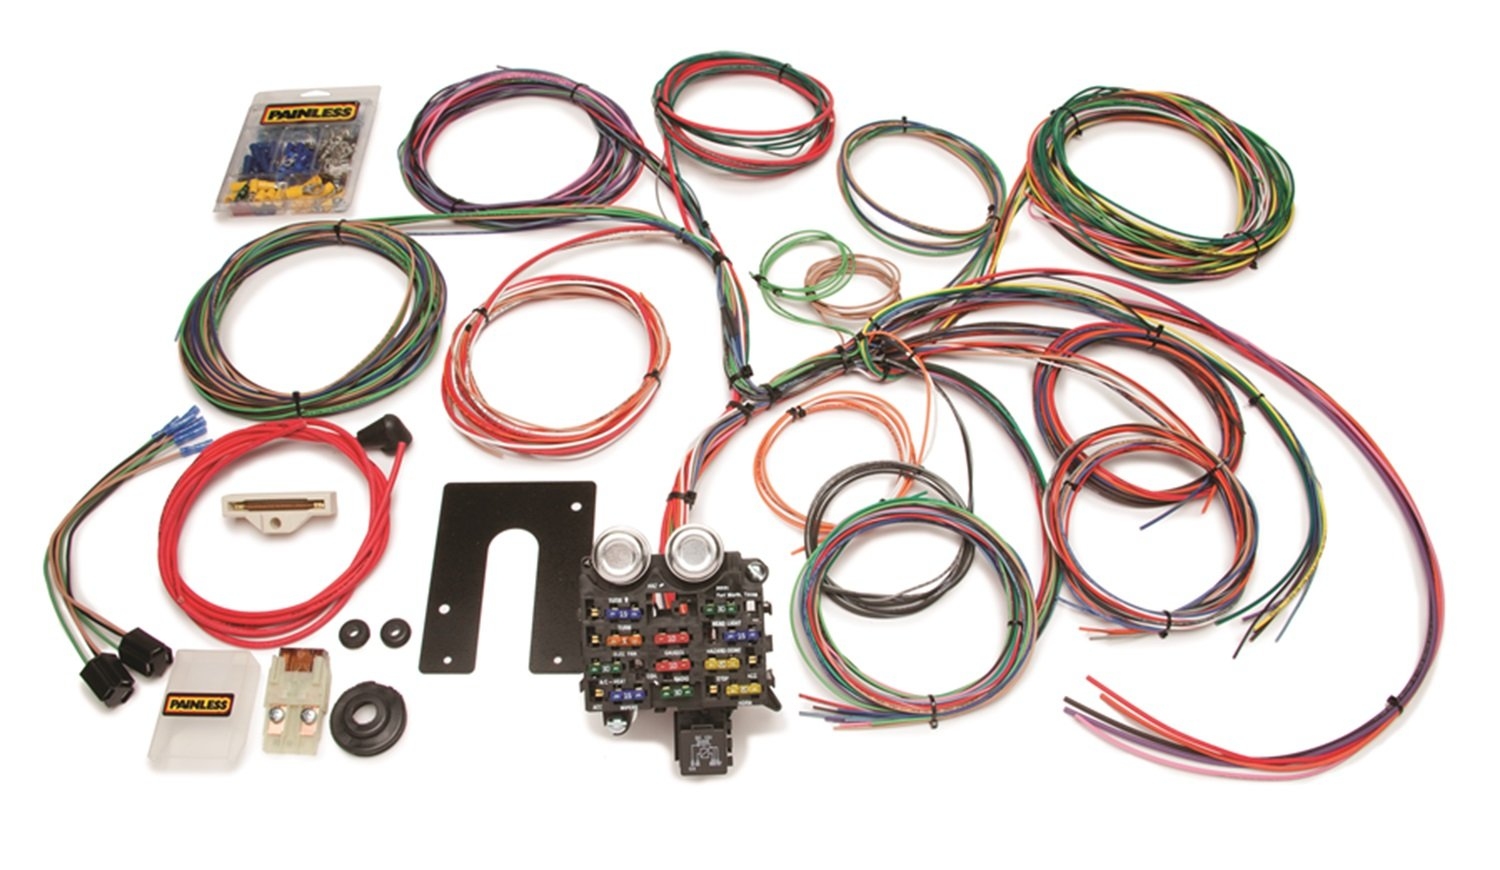 71y4s8BuPyL._SL1500_ amazon com painless wire 10105 wiring harness with firewall jeep cj7 wiring harness at eliteediting.co